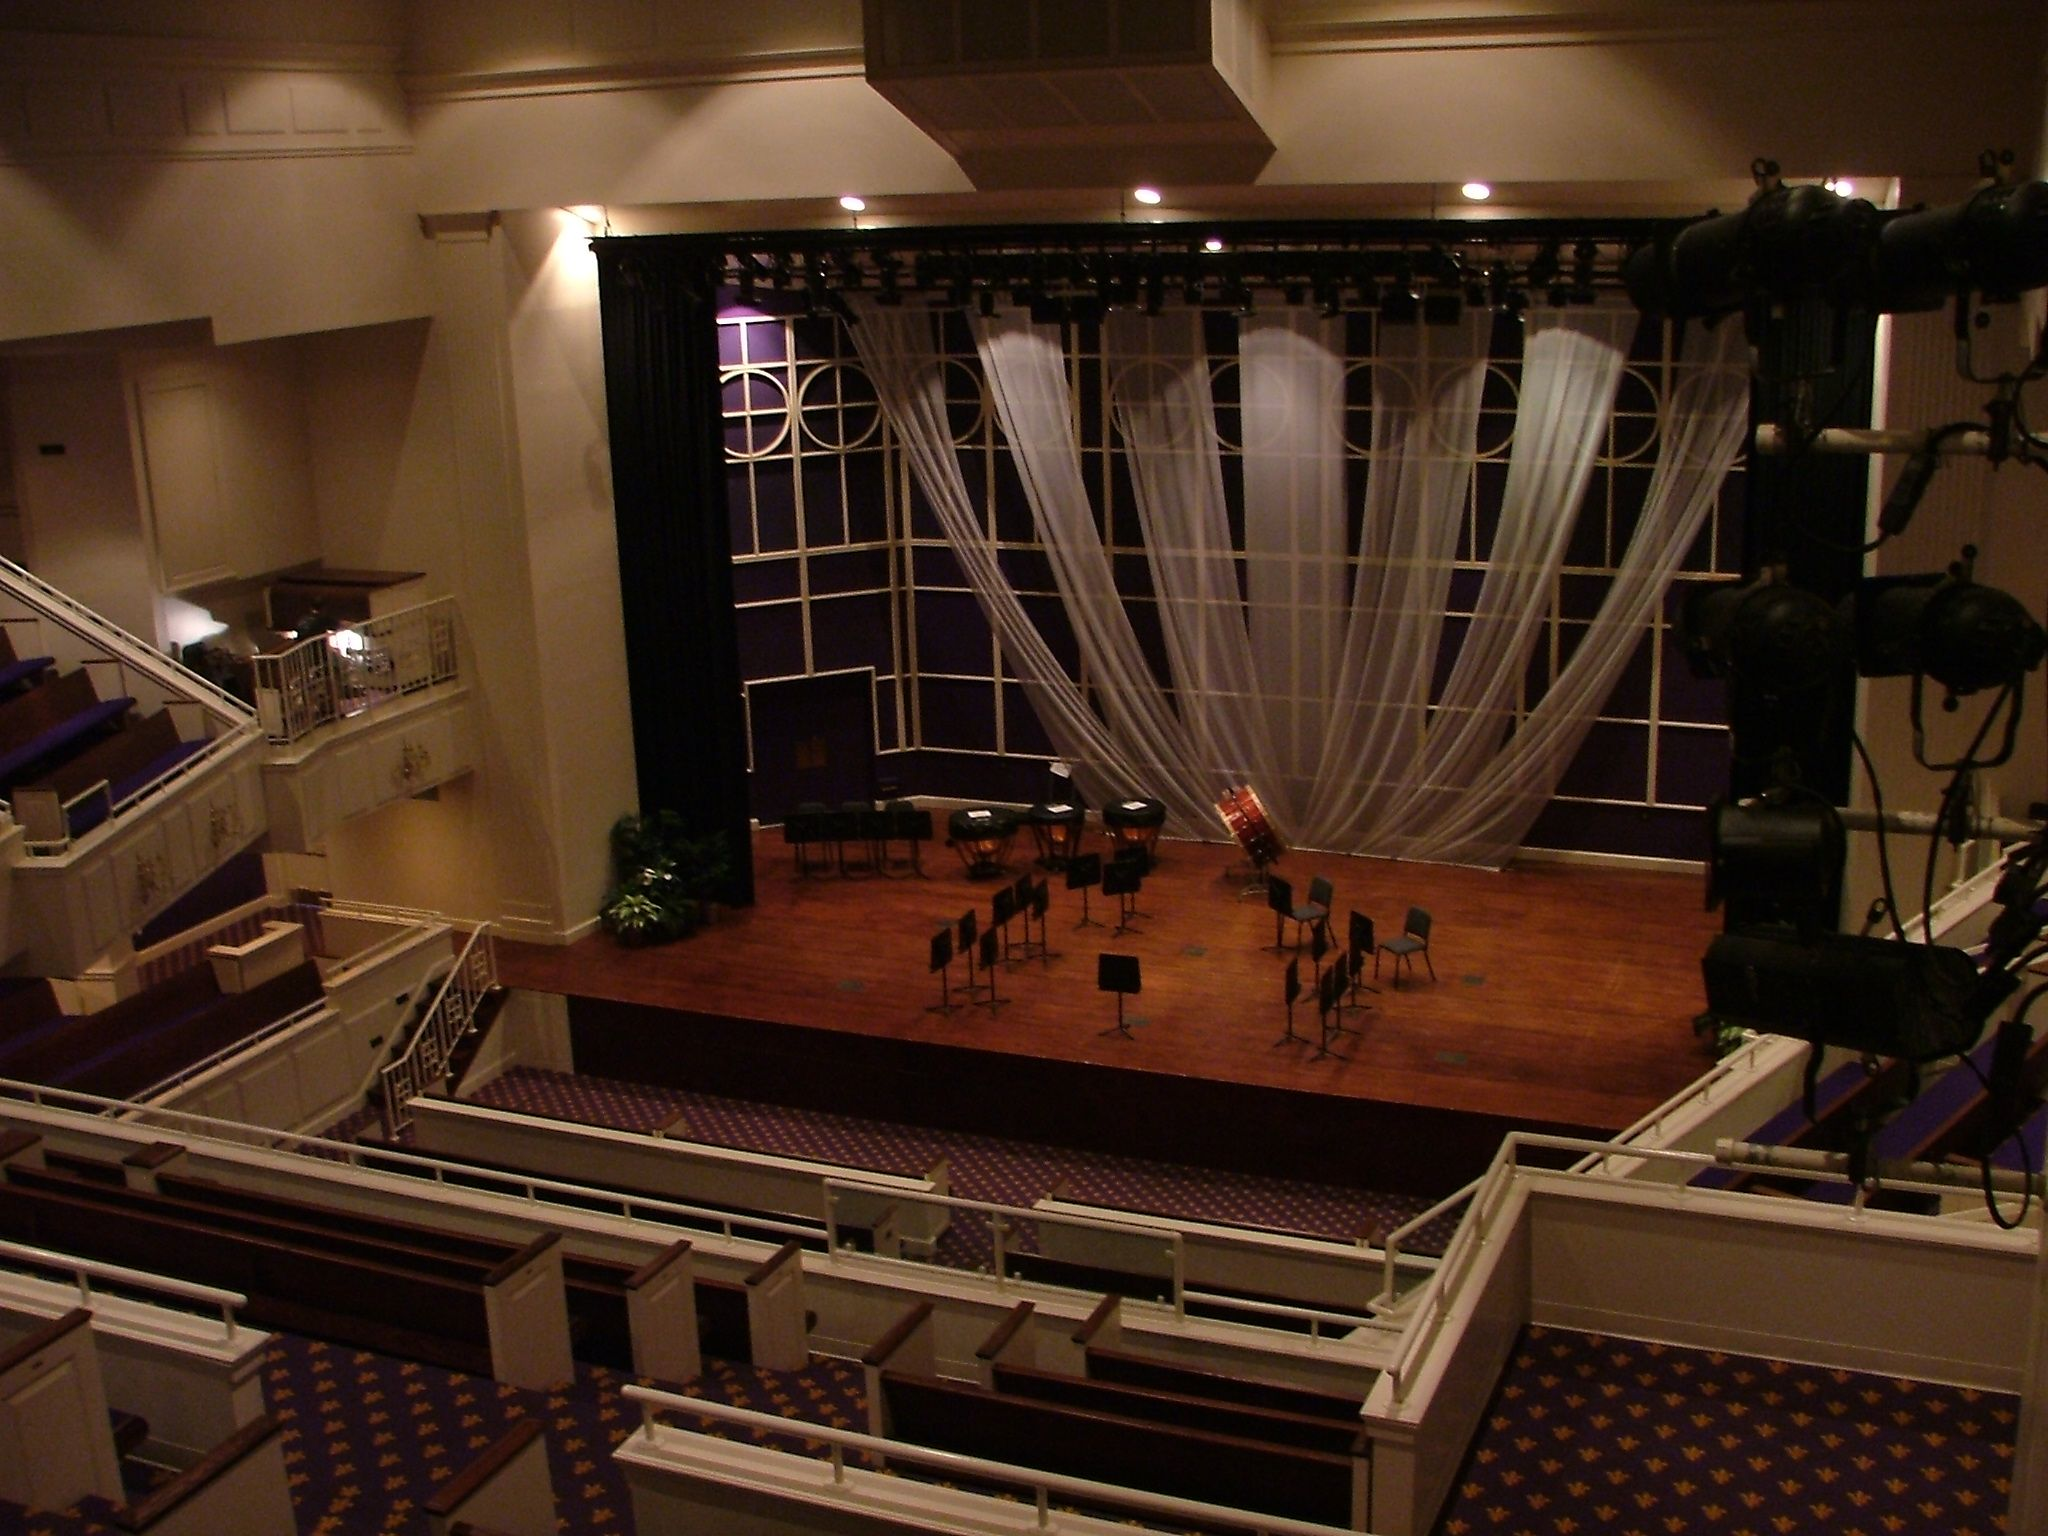 Musser Auditorium from Balcony